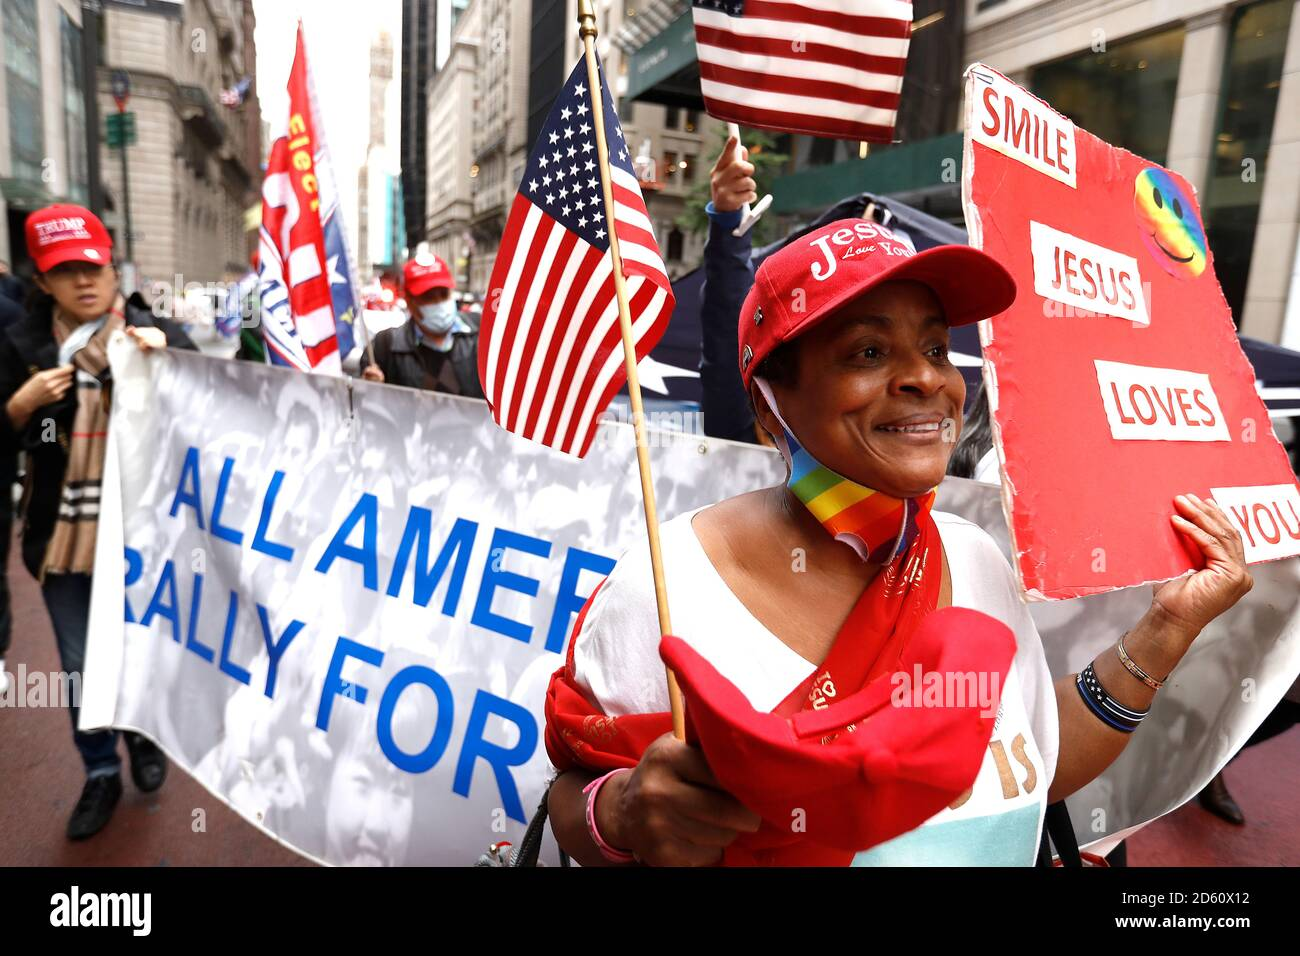 New York, United States. 13th Oct, 2020. Trump supporters march on Fifth Avenue while holding a banner to Times Square as contentious political and judicial topics are being debated in Washington DC. Issues concerning the health of the President and optimism of his re-election resounded among the rally participants. Credit: SOPA Images Limited/Alamy Live News Stock Photo